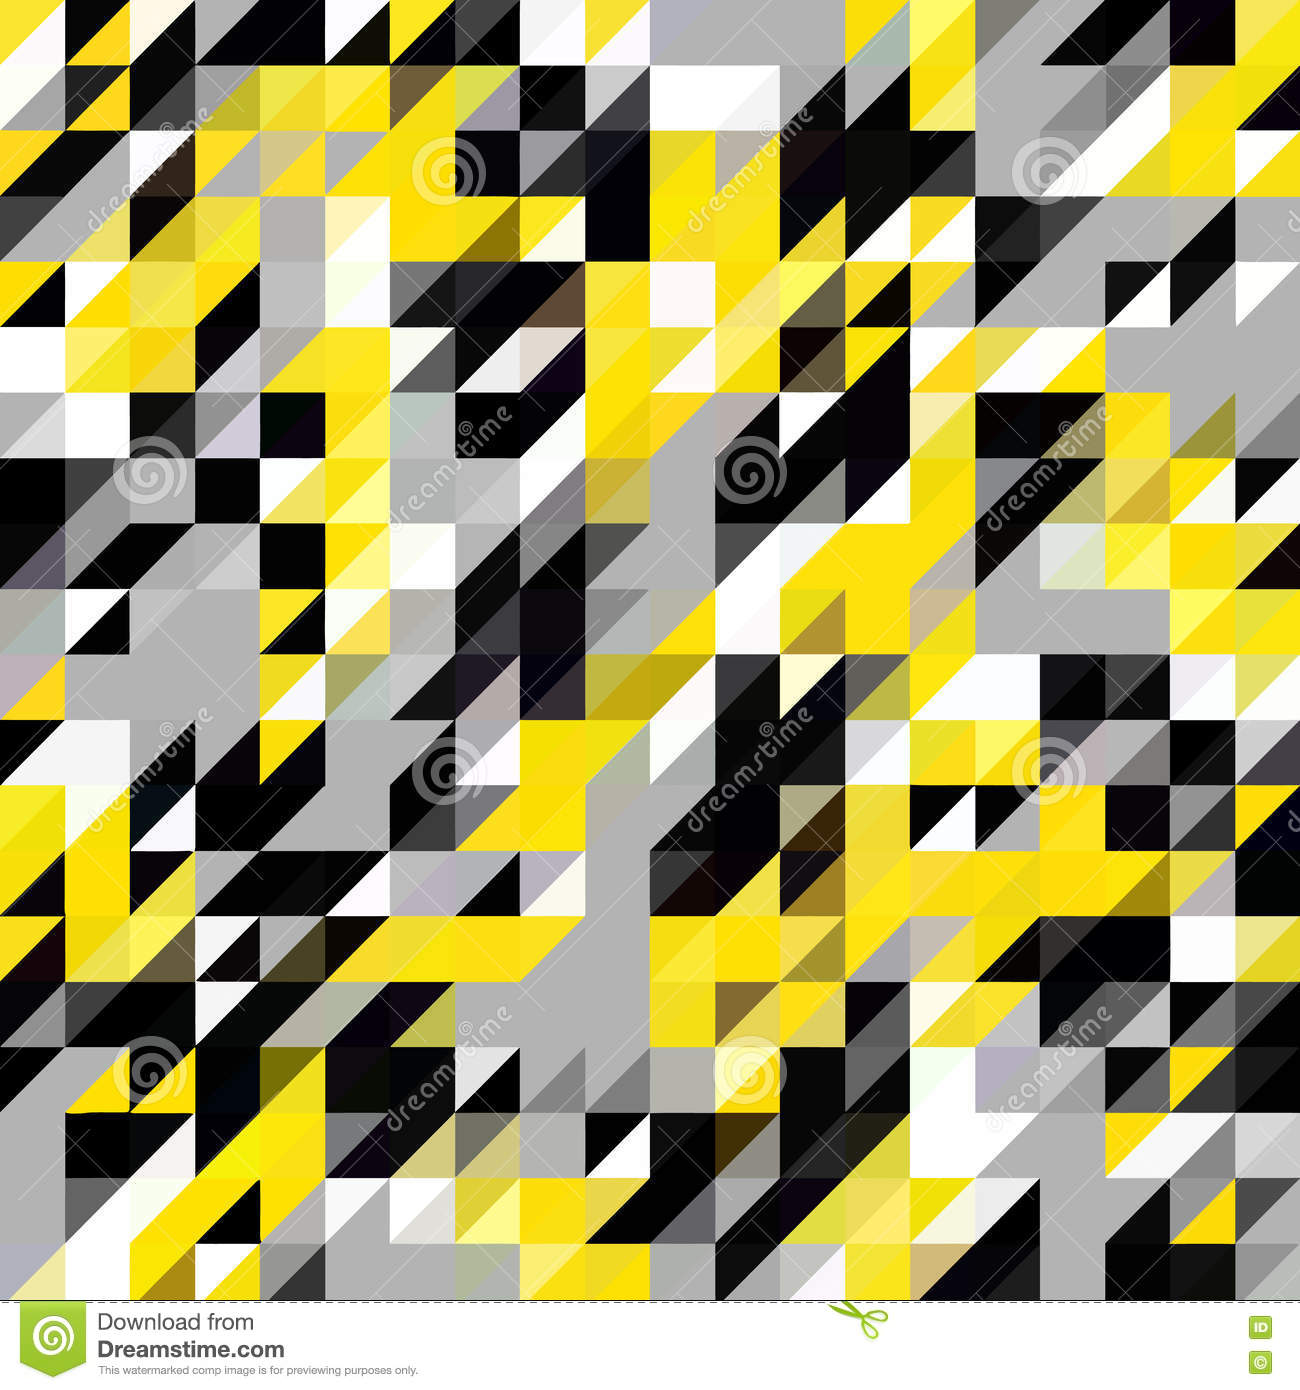 Triangle Geometric Shapes Pattern Black And Yellow Stock Vector Illustration Of Black Backdrop 73376063,Pid Controller Design Tuning Parameters And Simulation For 4th Order Plant